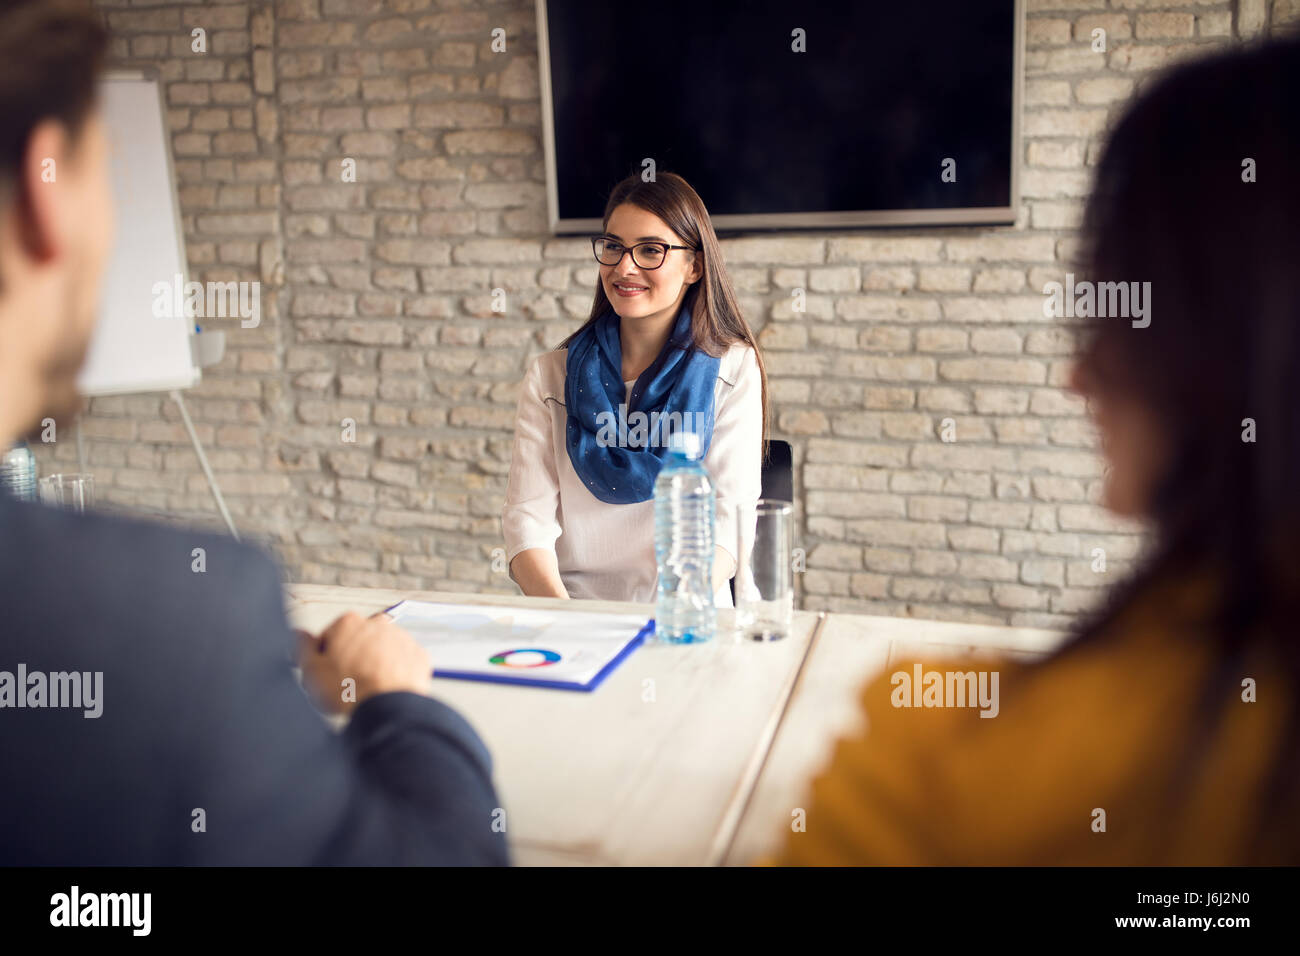 Female on job interview in company - Stock Image